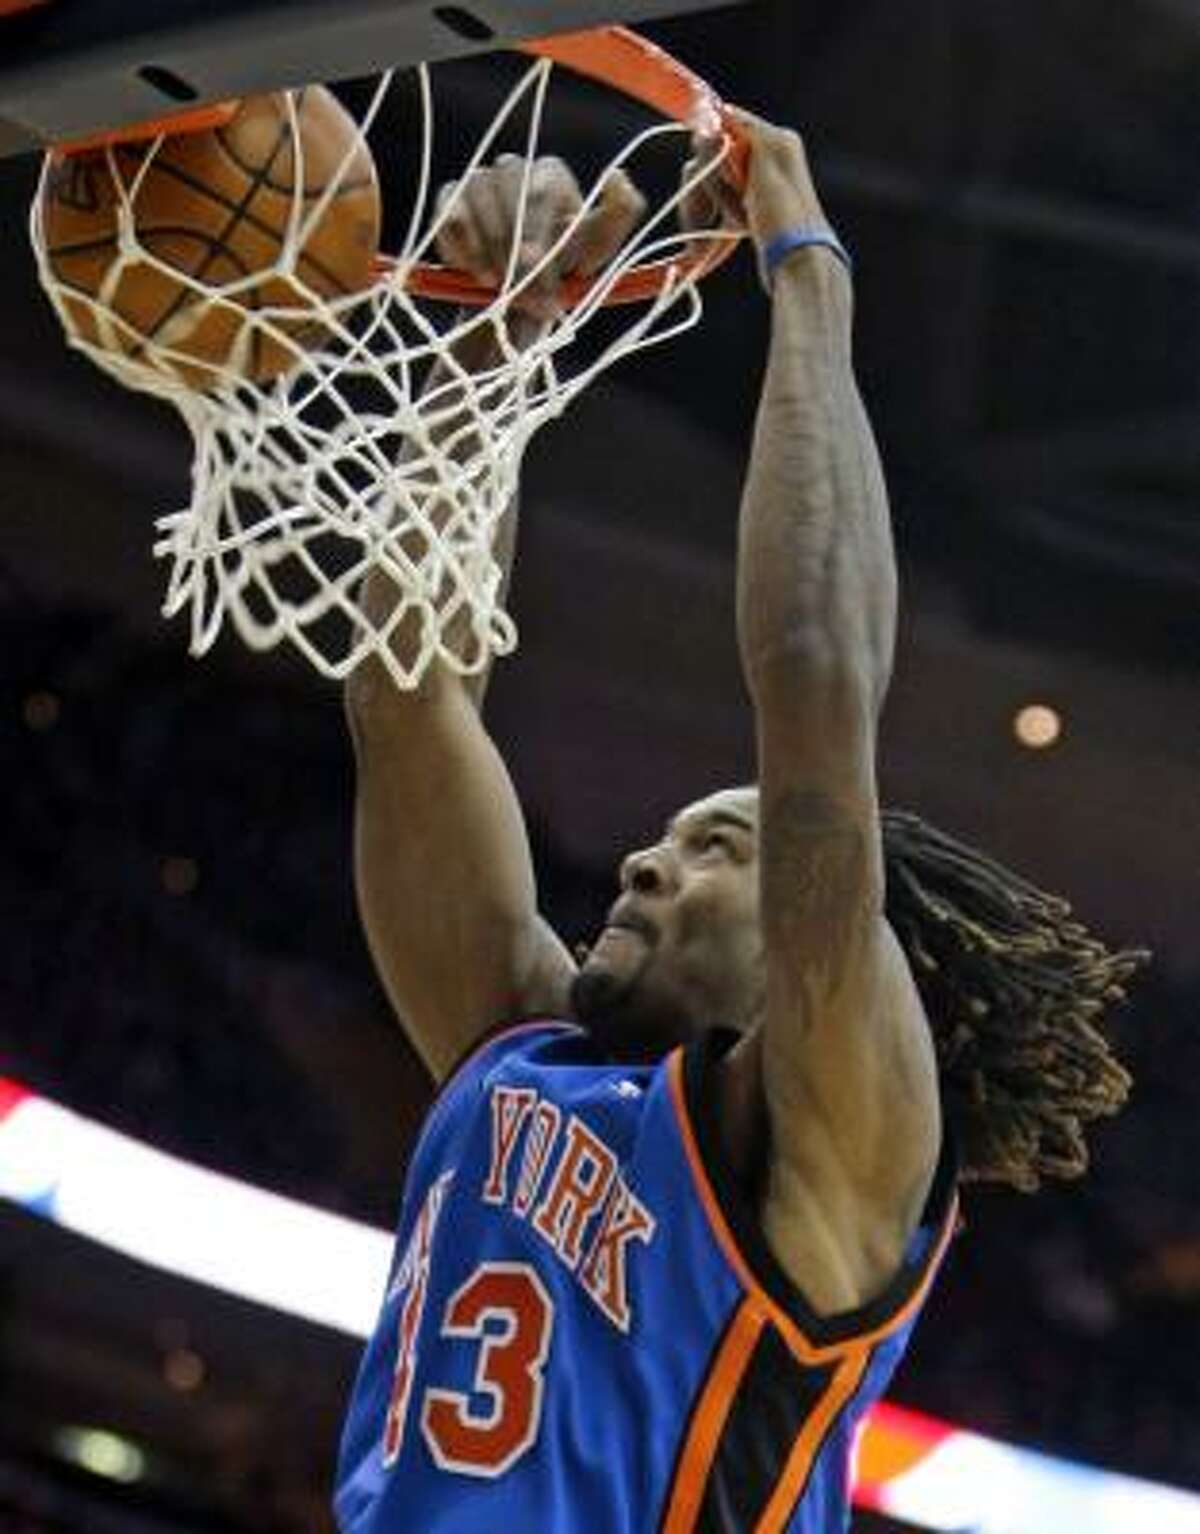 Jordan Hill (from New York Knicks) Position: Forward Age: 22 Height: 6-10 Weight: 235 2009-10 stats: 4.0 points per game, 2.5 rebounds Comment: Will compete for a spot in the rotation initially, but is an investment as a high-energy, athletic, above-the-rim player. He has a better than advertised jumper, but lacks polish.